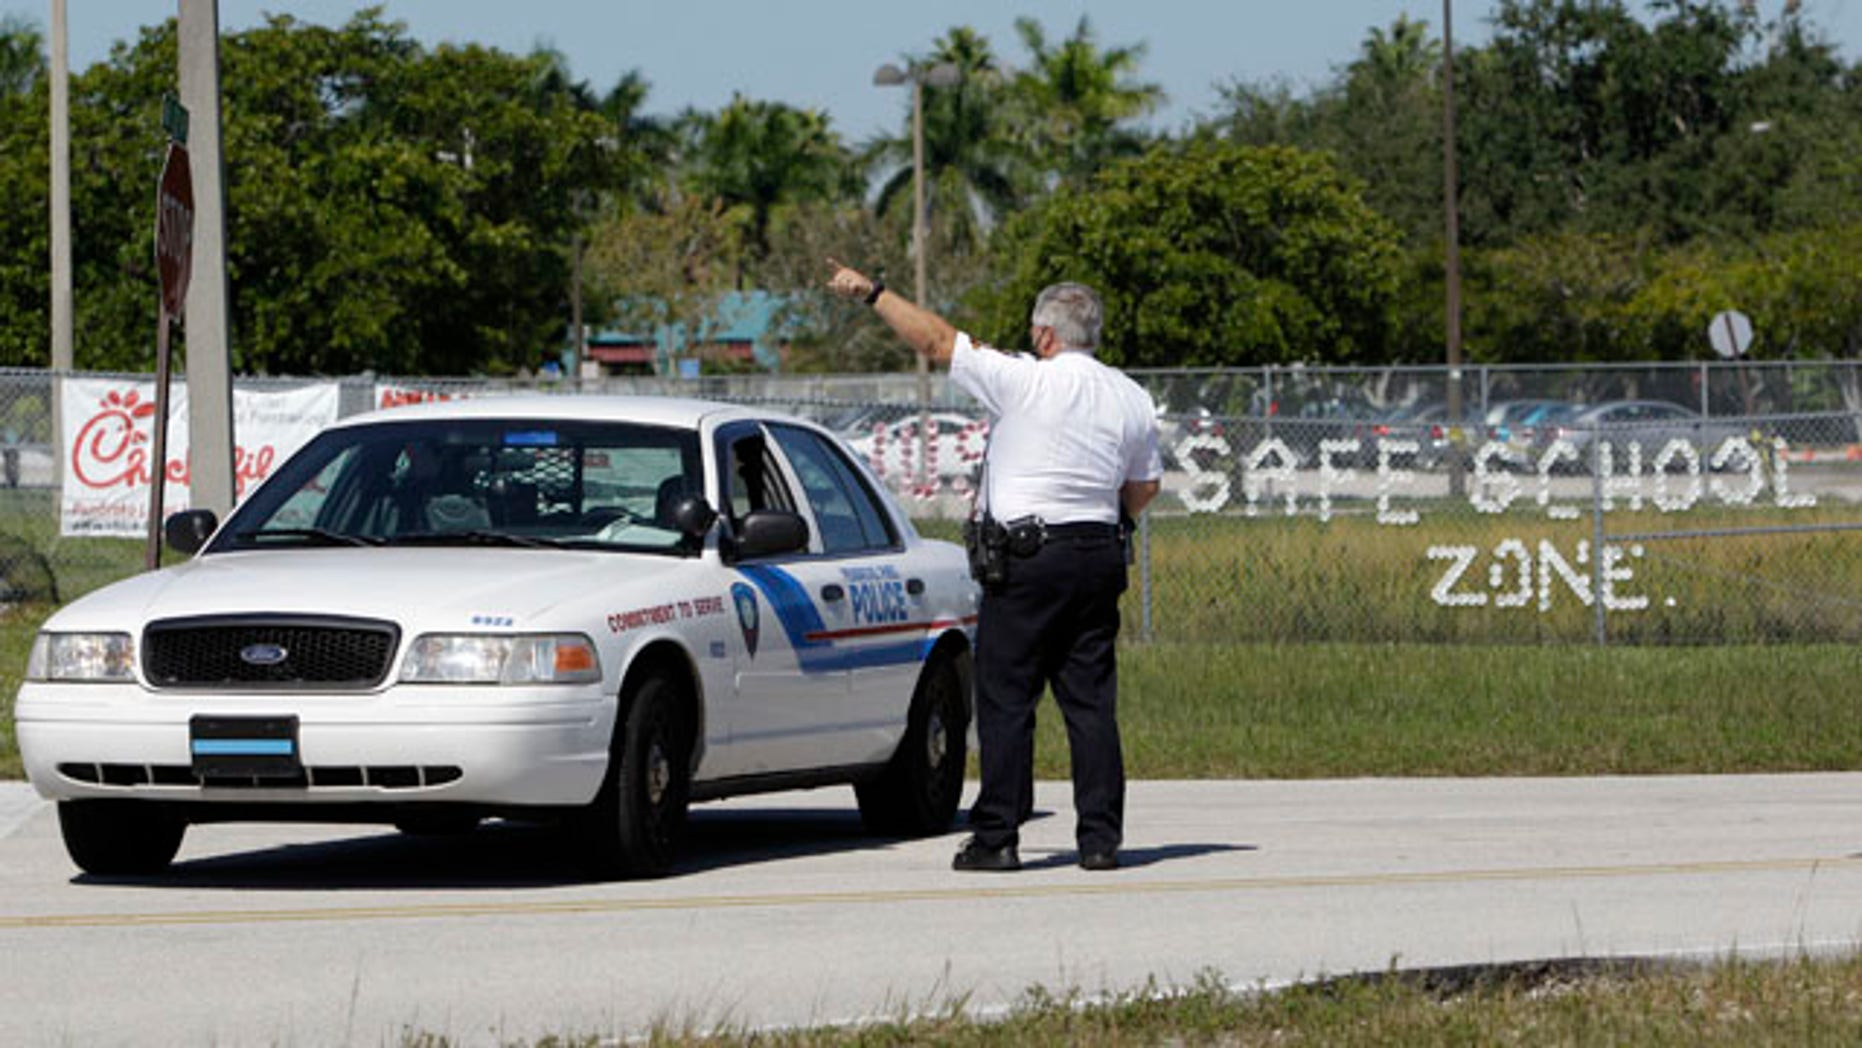 Nov. 10: Pembroke Pines police officer Michael Banks directs traffic away from Walter C. Young Middle School in Pembroke Pines, Fla. Schools in Broward County were on lockdown after authorities said an unidentified woman called a radio station, saying her husband might go to a school and start shooting.